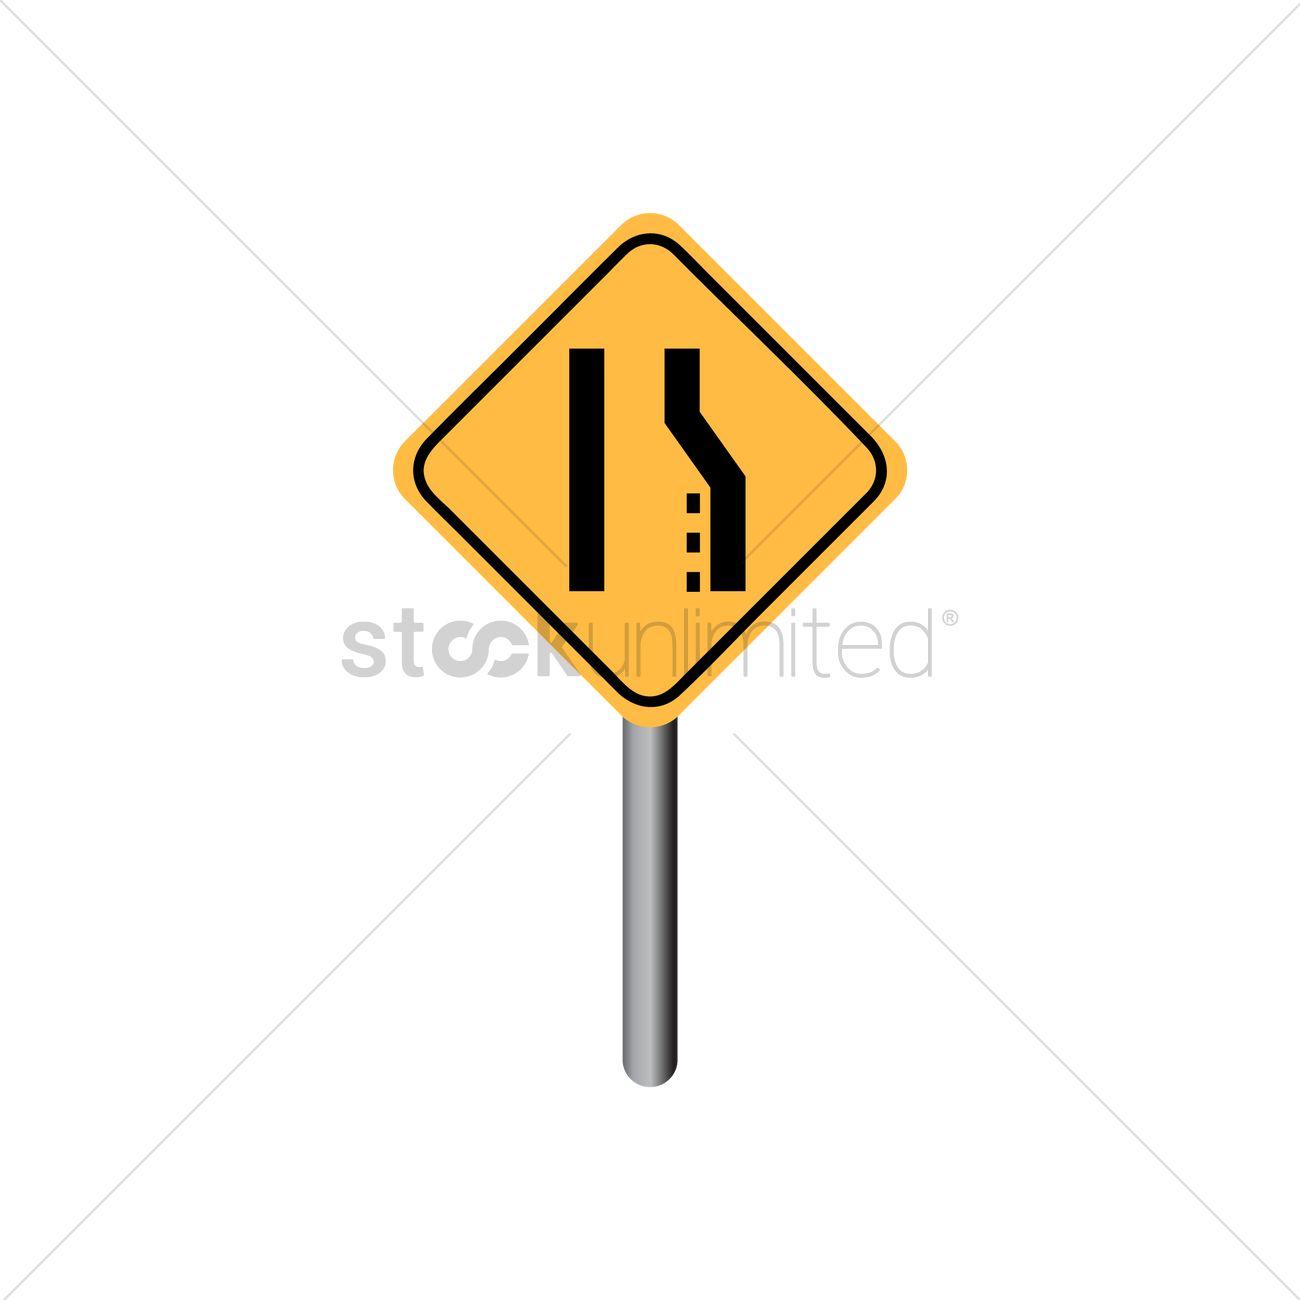 right lane ends sign vector image 1544878 stockunlimited